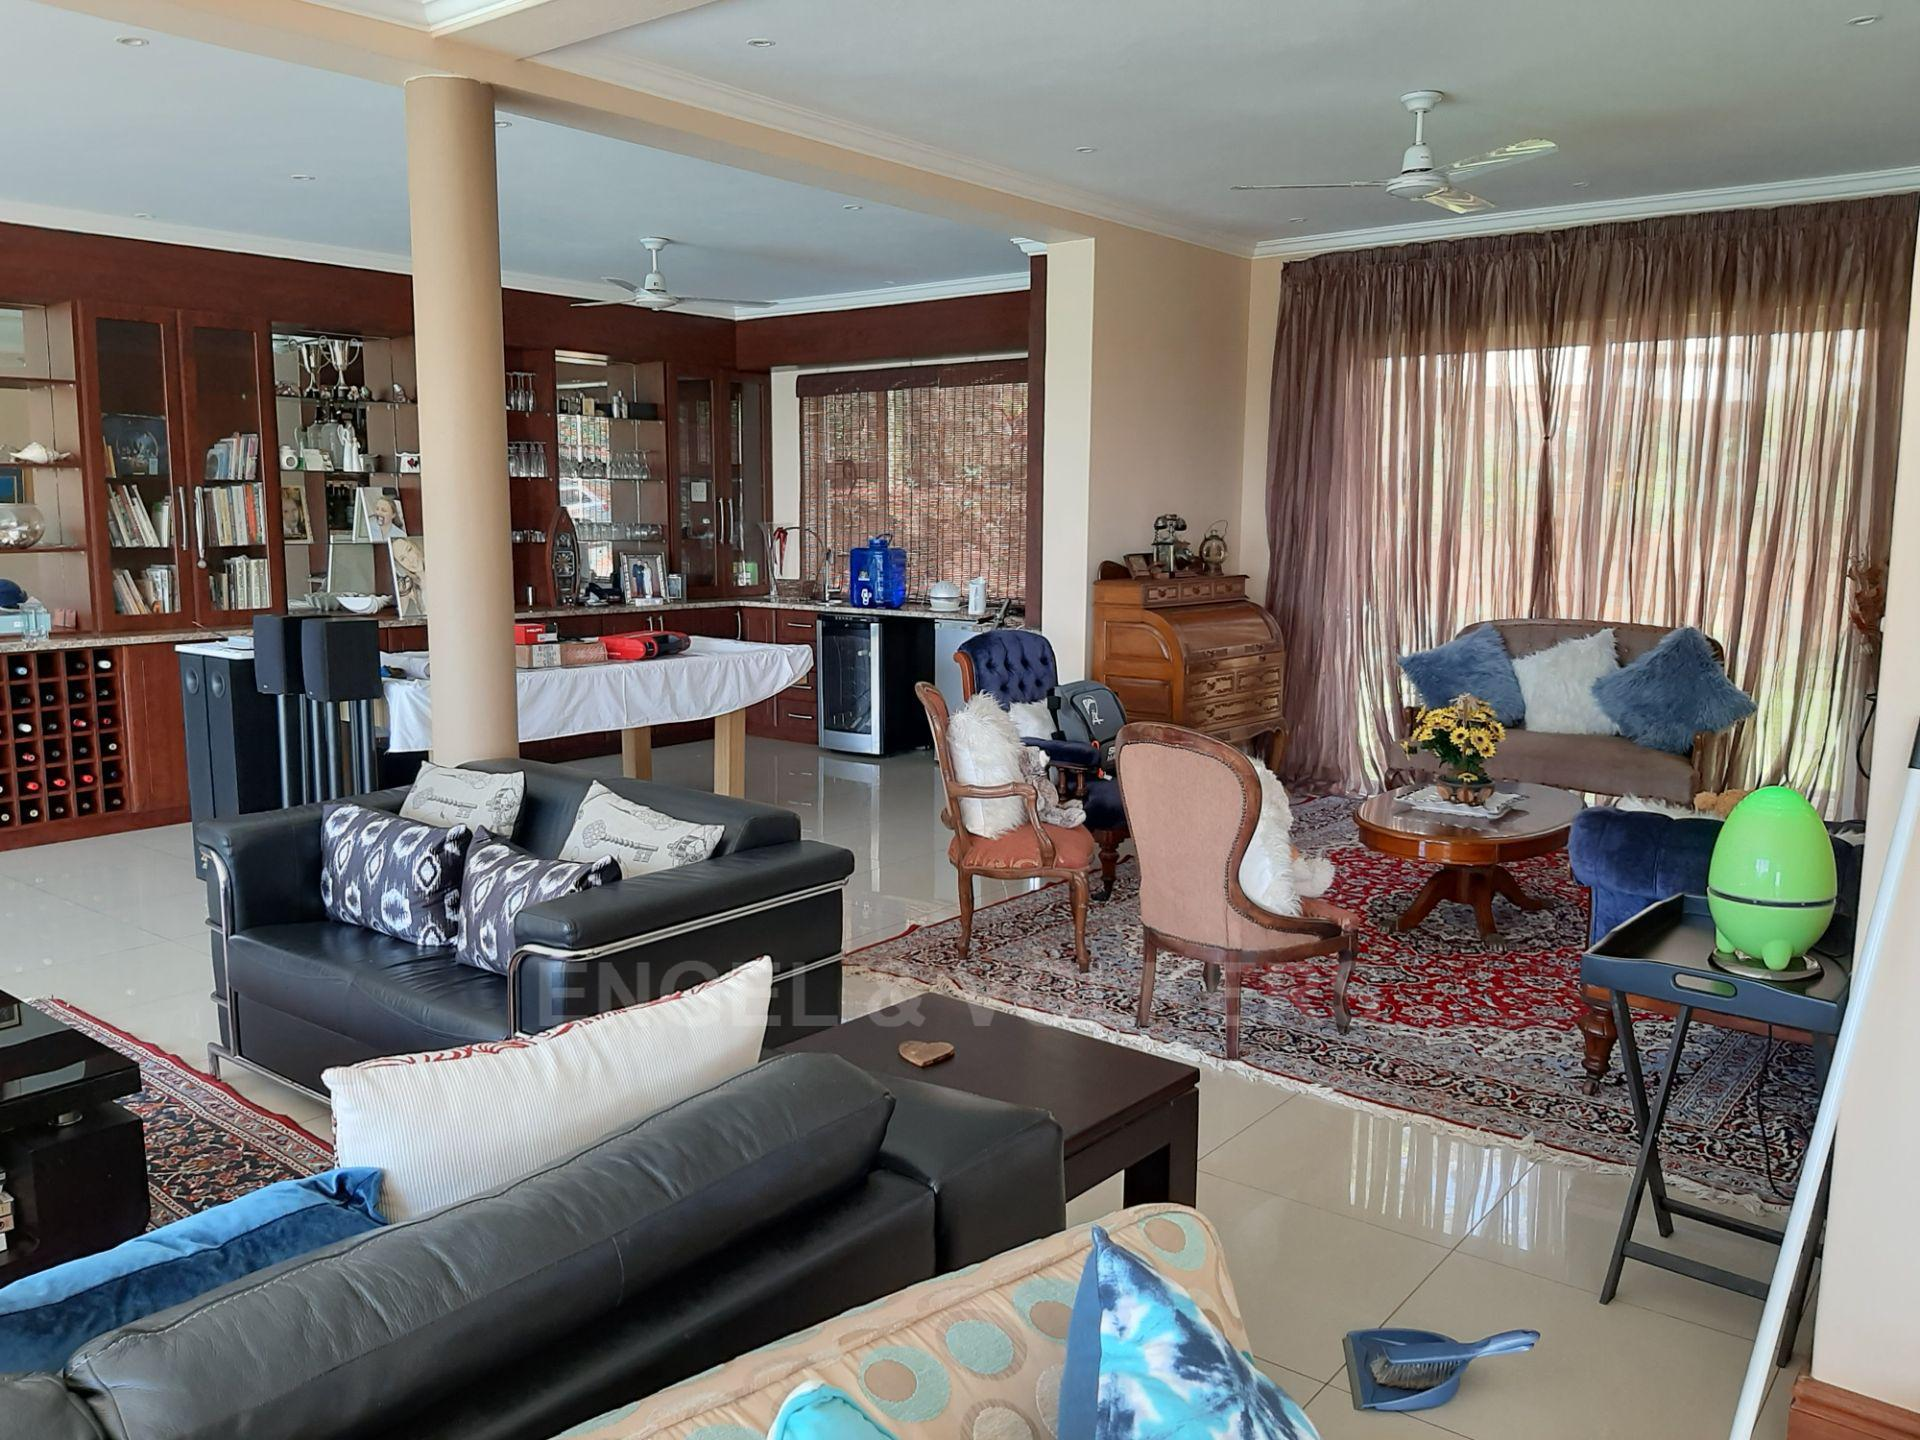 House in Southbroom - Lounge and entertainment